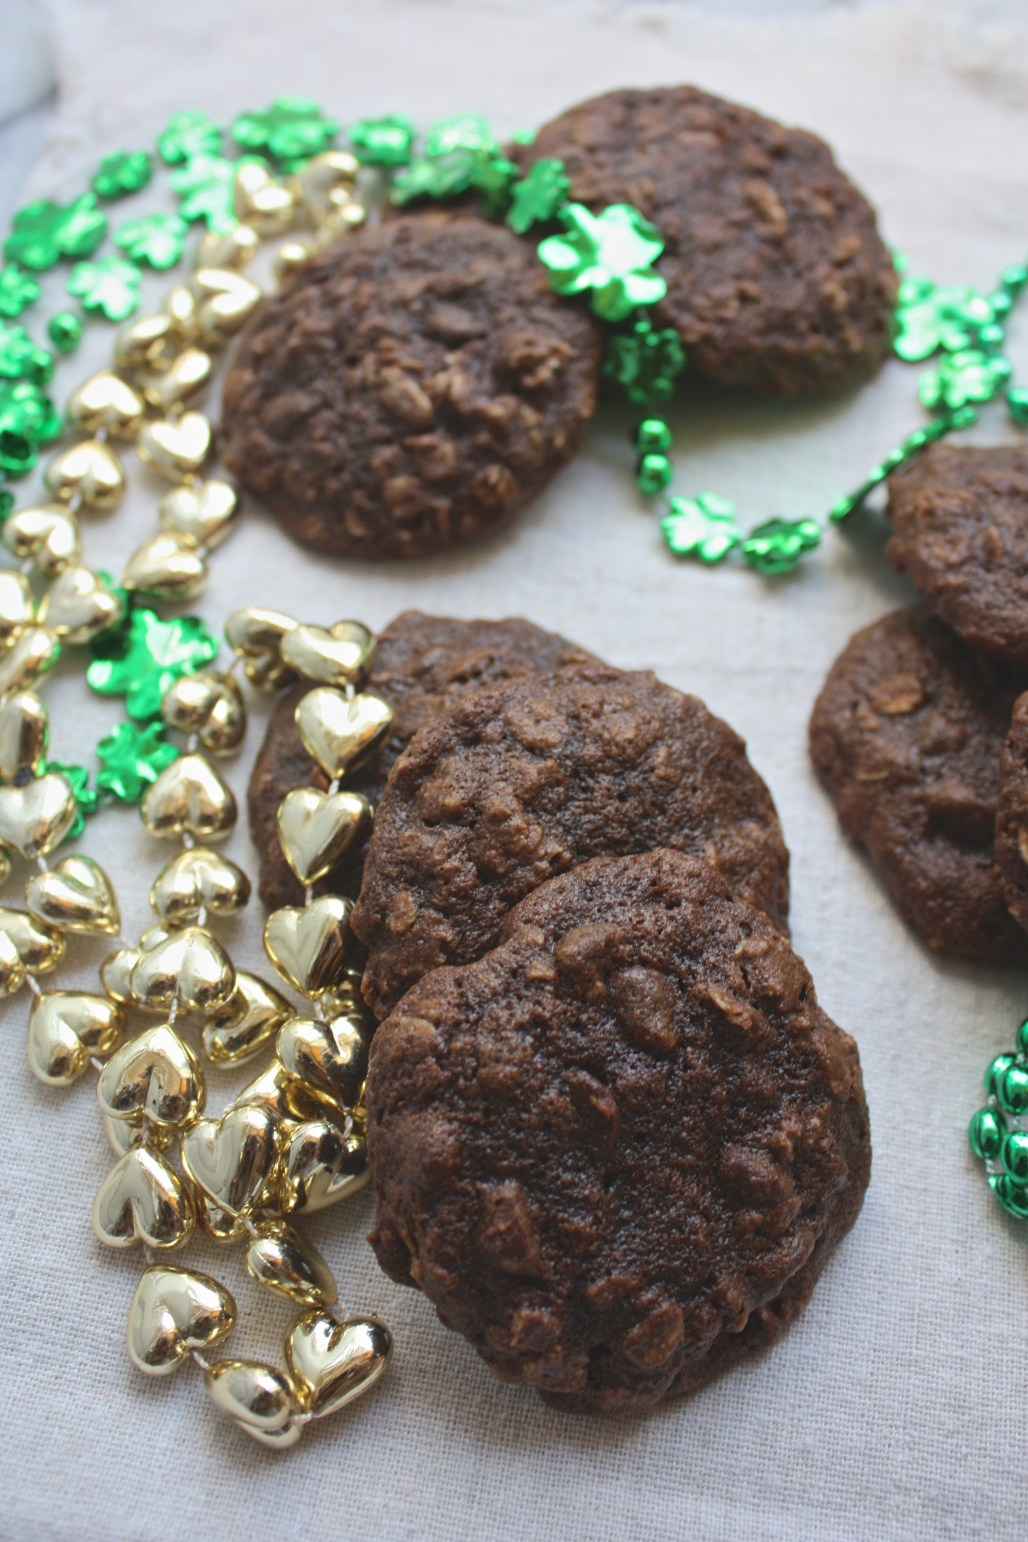 Vanilla Stout Chocolate Oatmeal Cookies